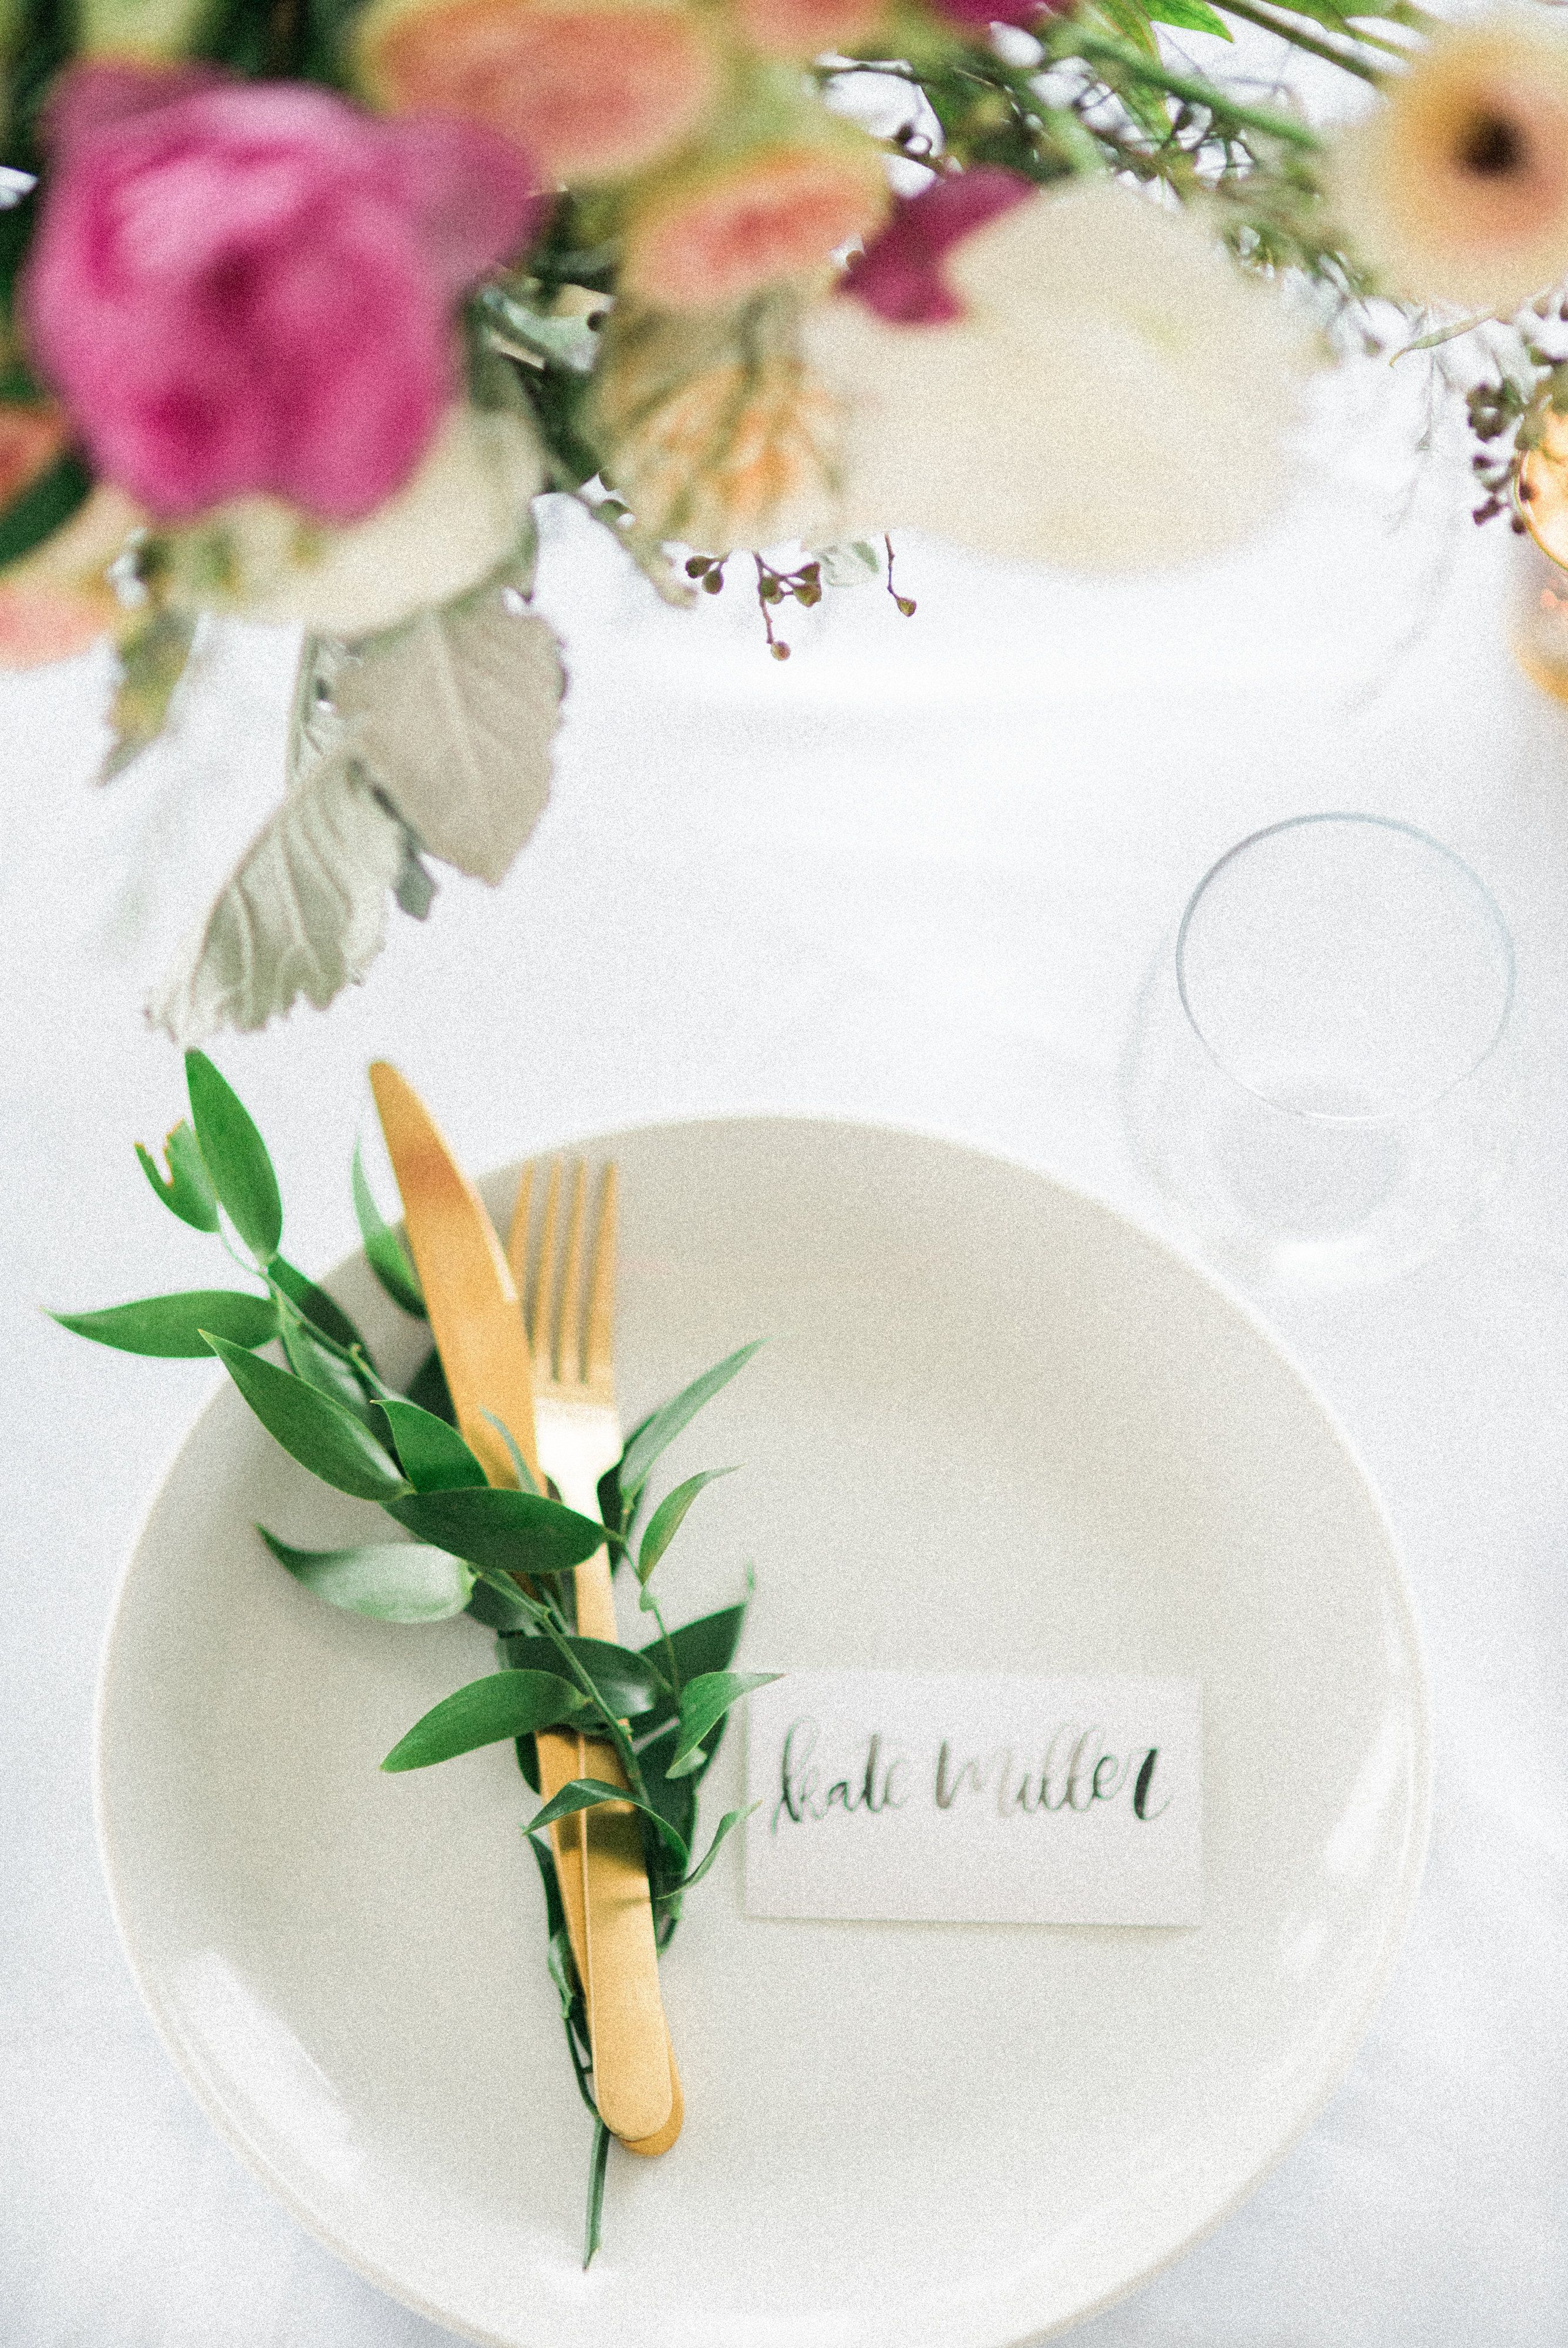 Garden Wedding - Gorgeous place setting! Sunkissed Blooms floral design photographed by Lyndsey A Photography at Ashley Inn in Kentucky. Wedding florals with lots of lush greenery and garden-inspired natural textures.